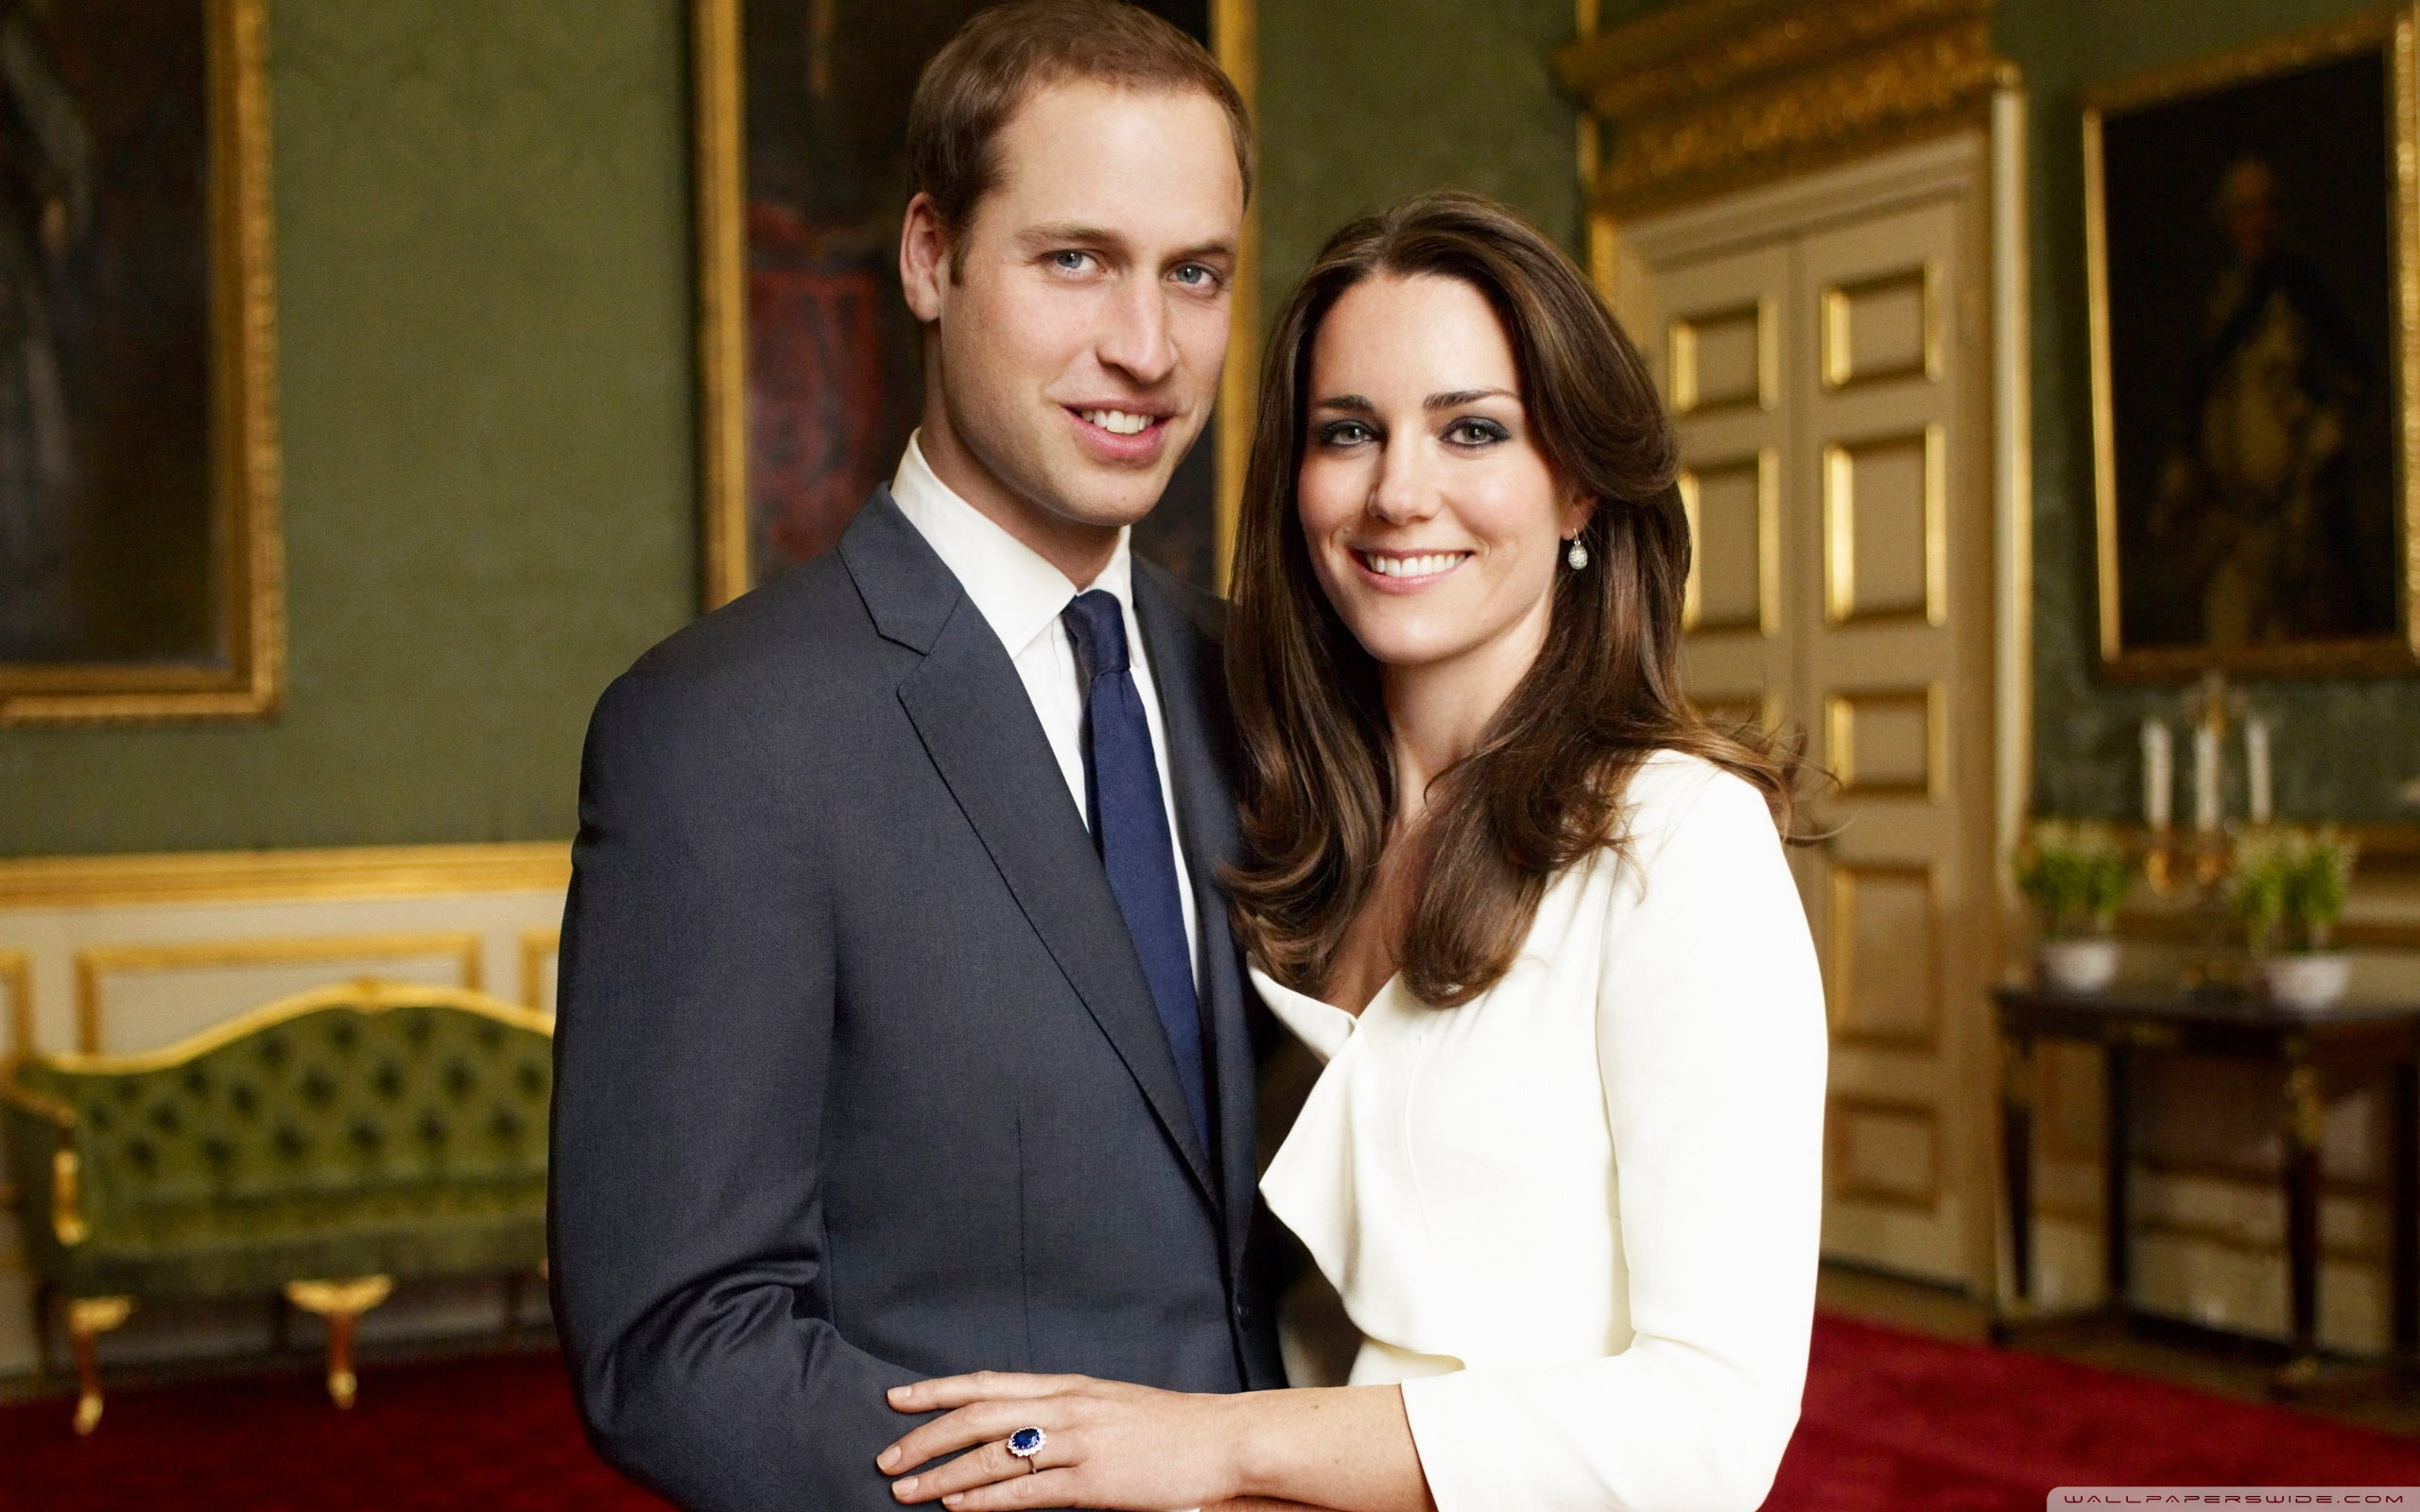 Prince William And Kate Middleton 4K HD Desktop Wallpaper for 2560x1600